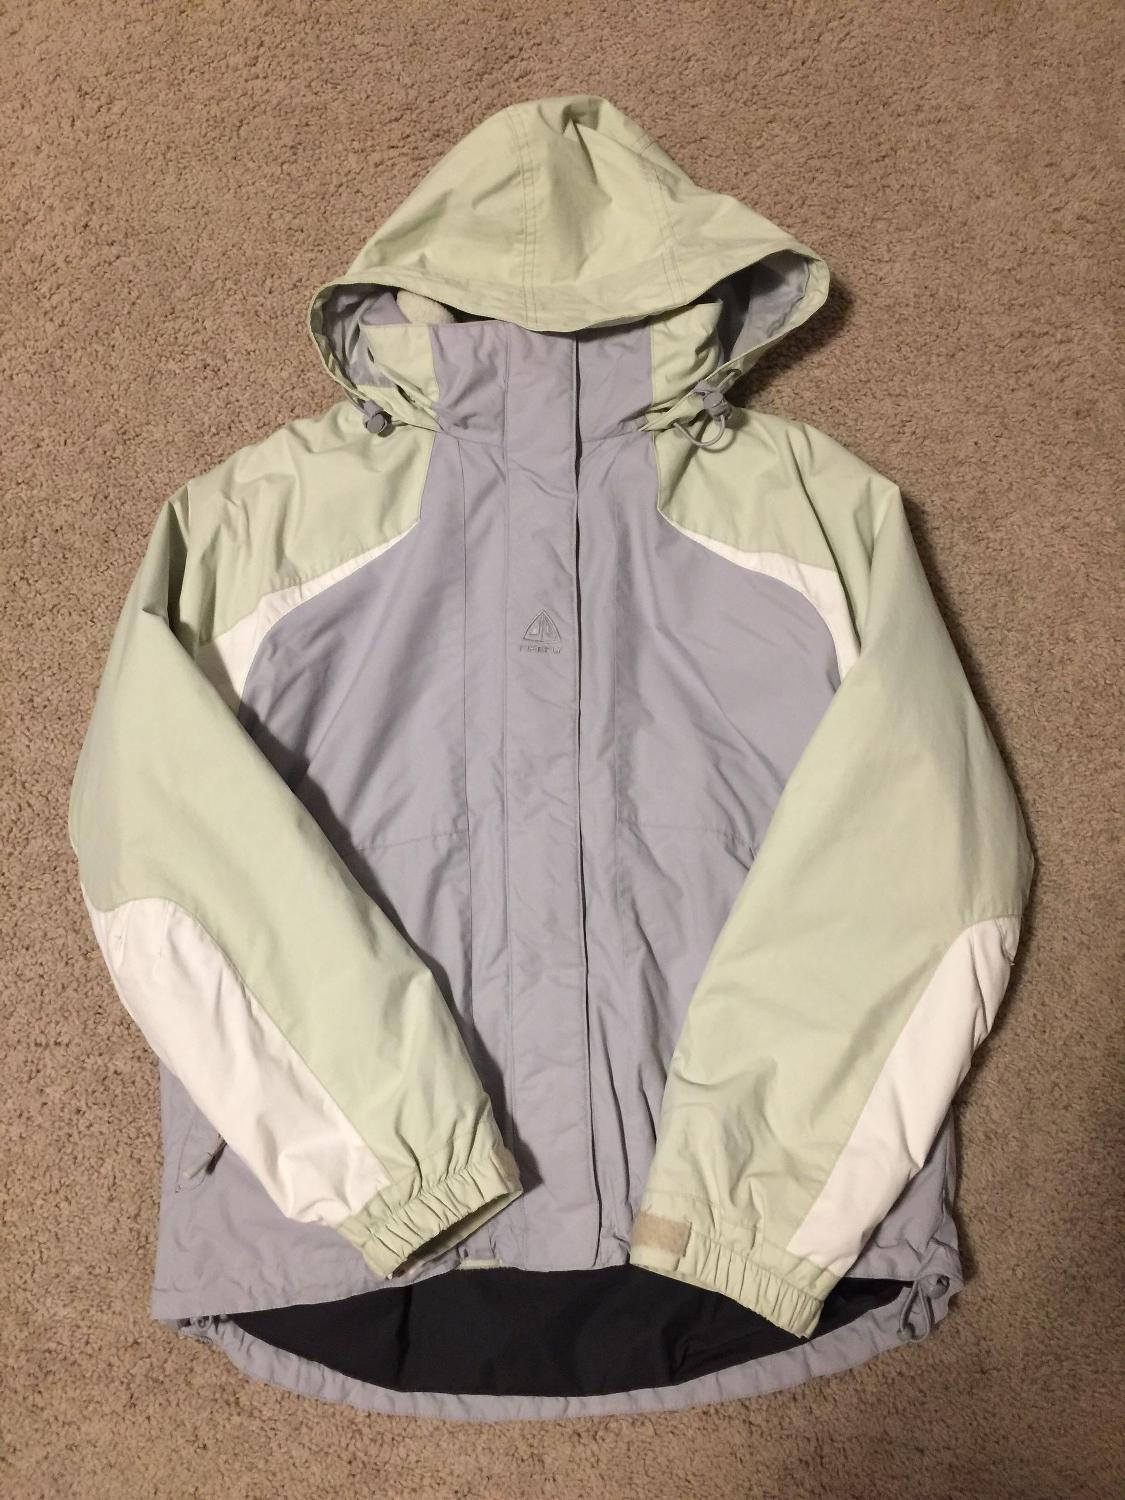 Find more Ladies Firefly Winter Jacket for sale at up to